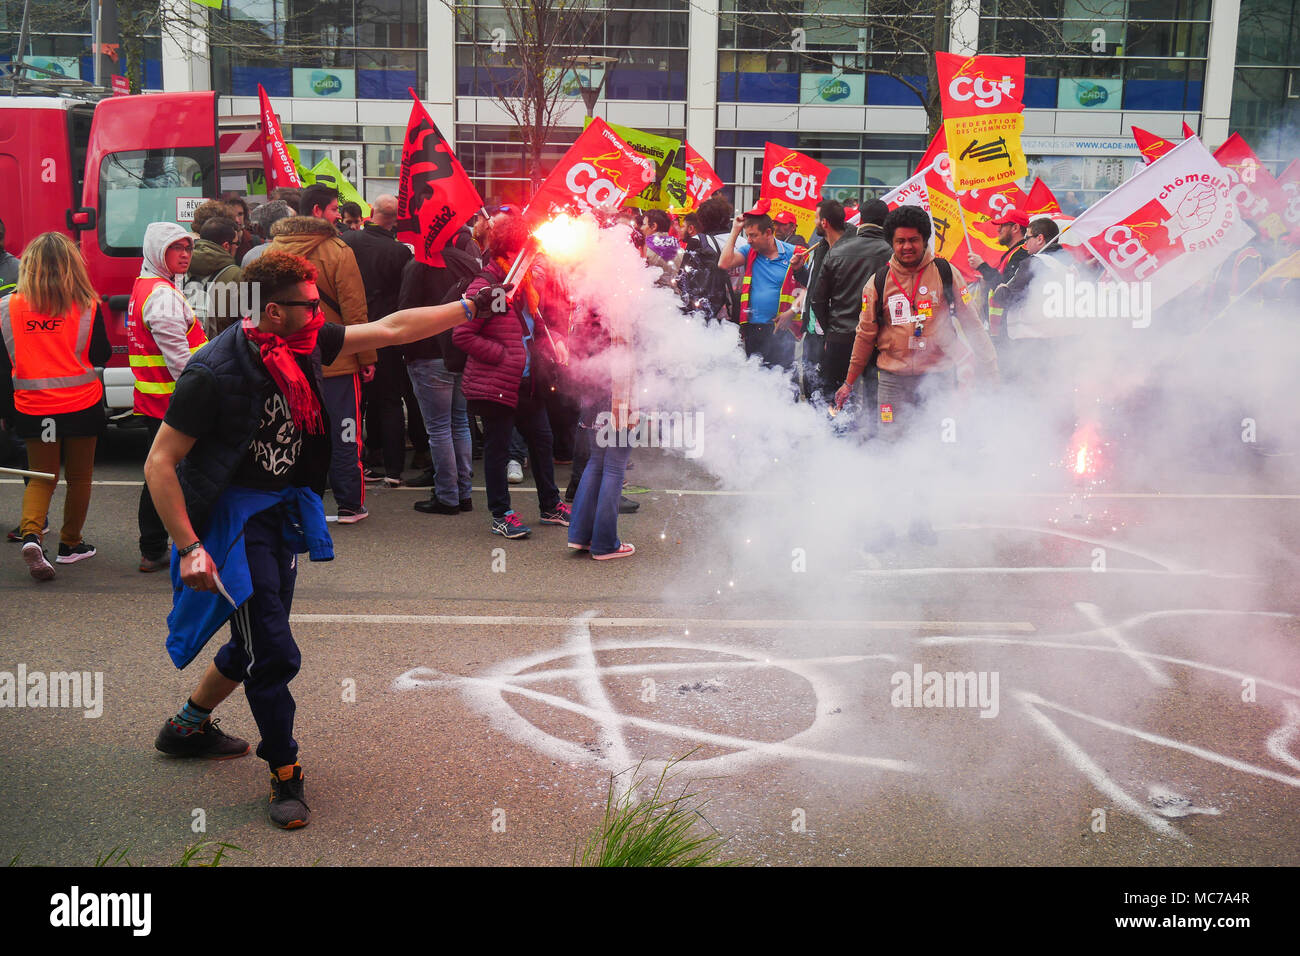 Lyon, France, 13th April 2018: Anarchists are seen in Lyon (Central-Eastern France) on April 13, 2018 as they hold flares, in Part-Dieu area during the demo organized by trade unions on the fifth day of action against SNCF employees status reform engaged by French Government.  Credit: Serge Mouraret/Alamy Live News - Stock Image